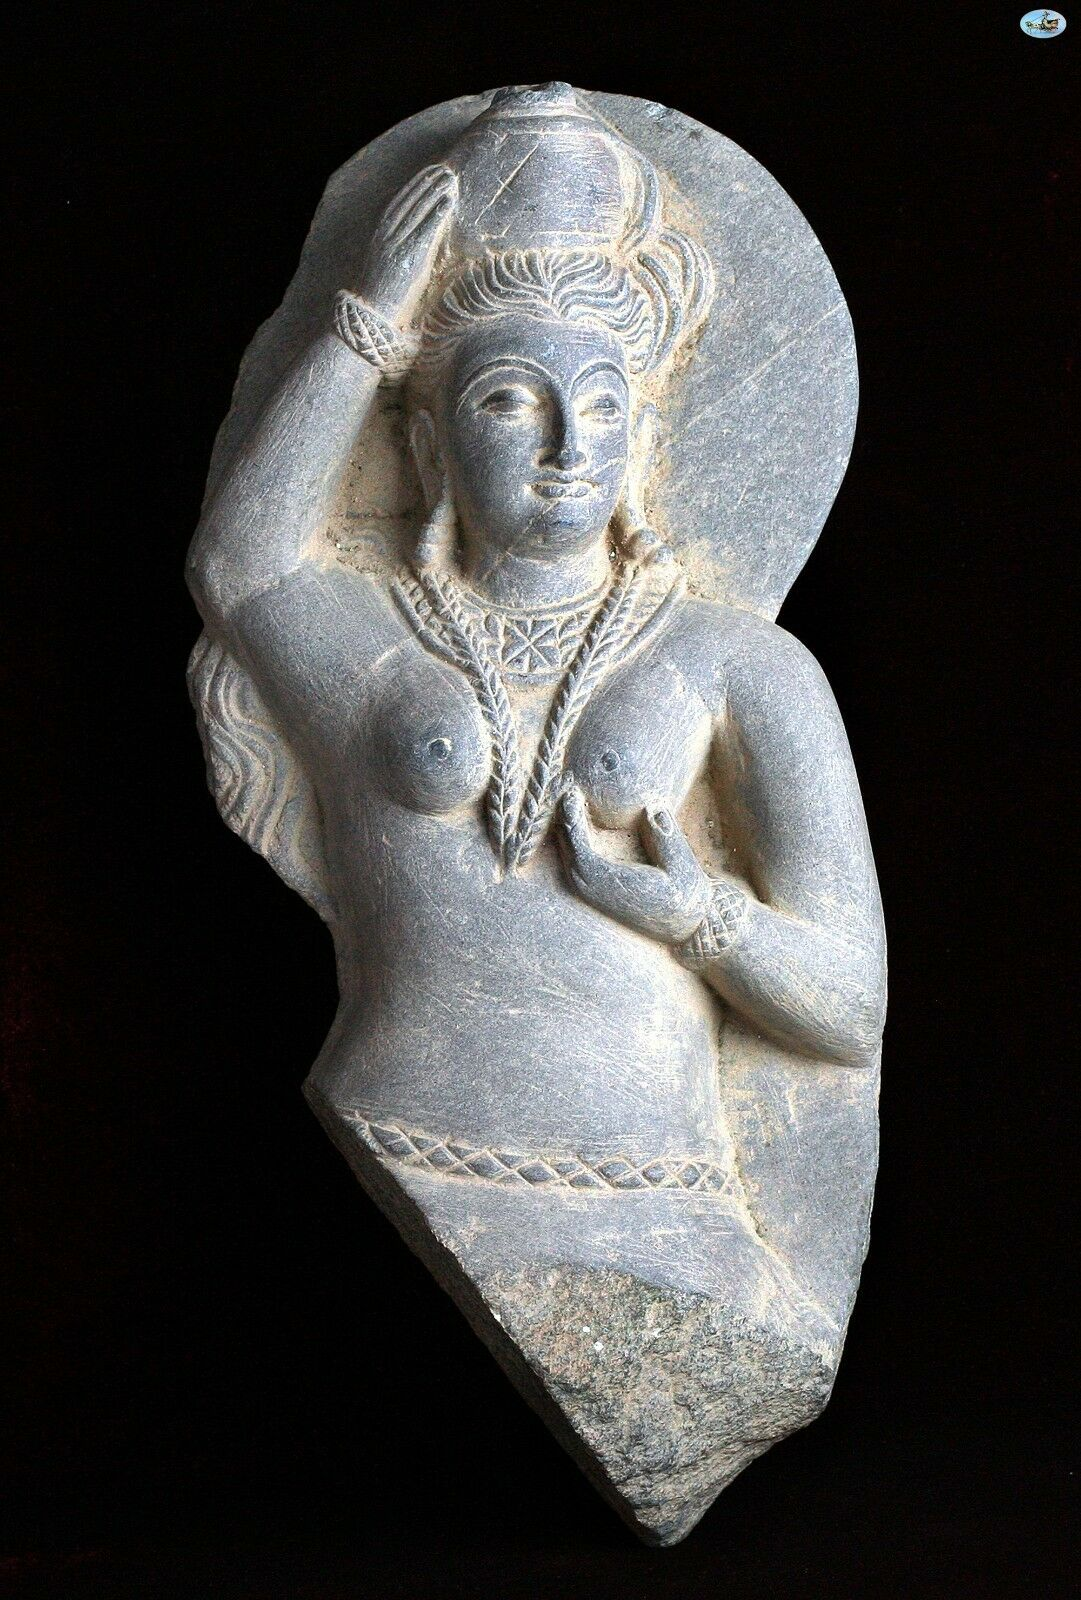 Indian Hindu Goddess of Ancient India Kushan Period Figure 2nd-3rd Century AD